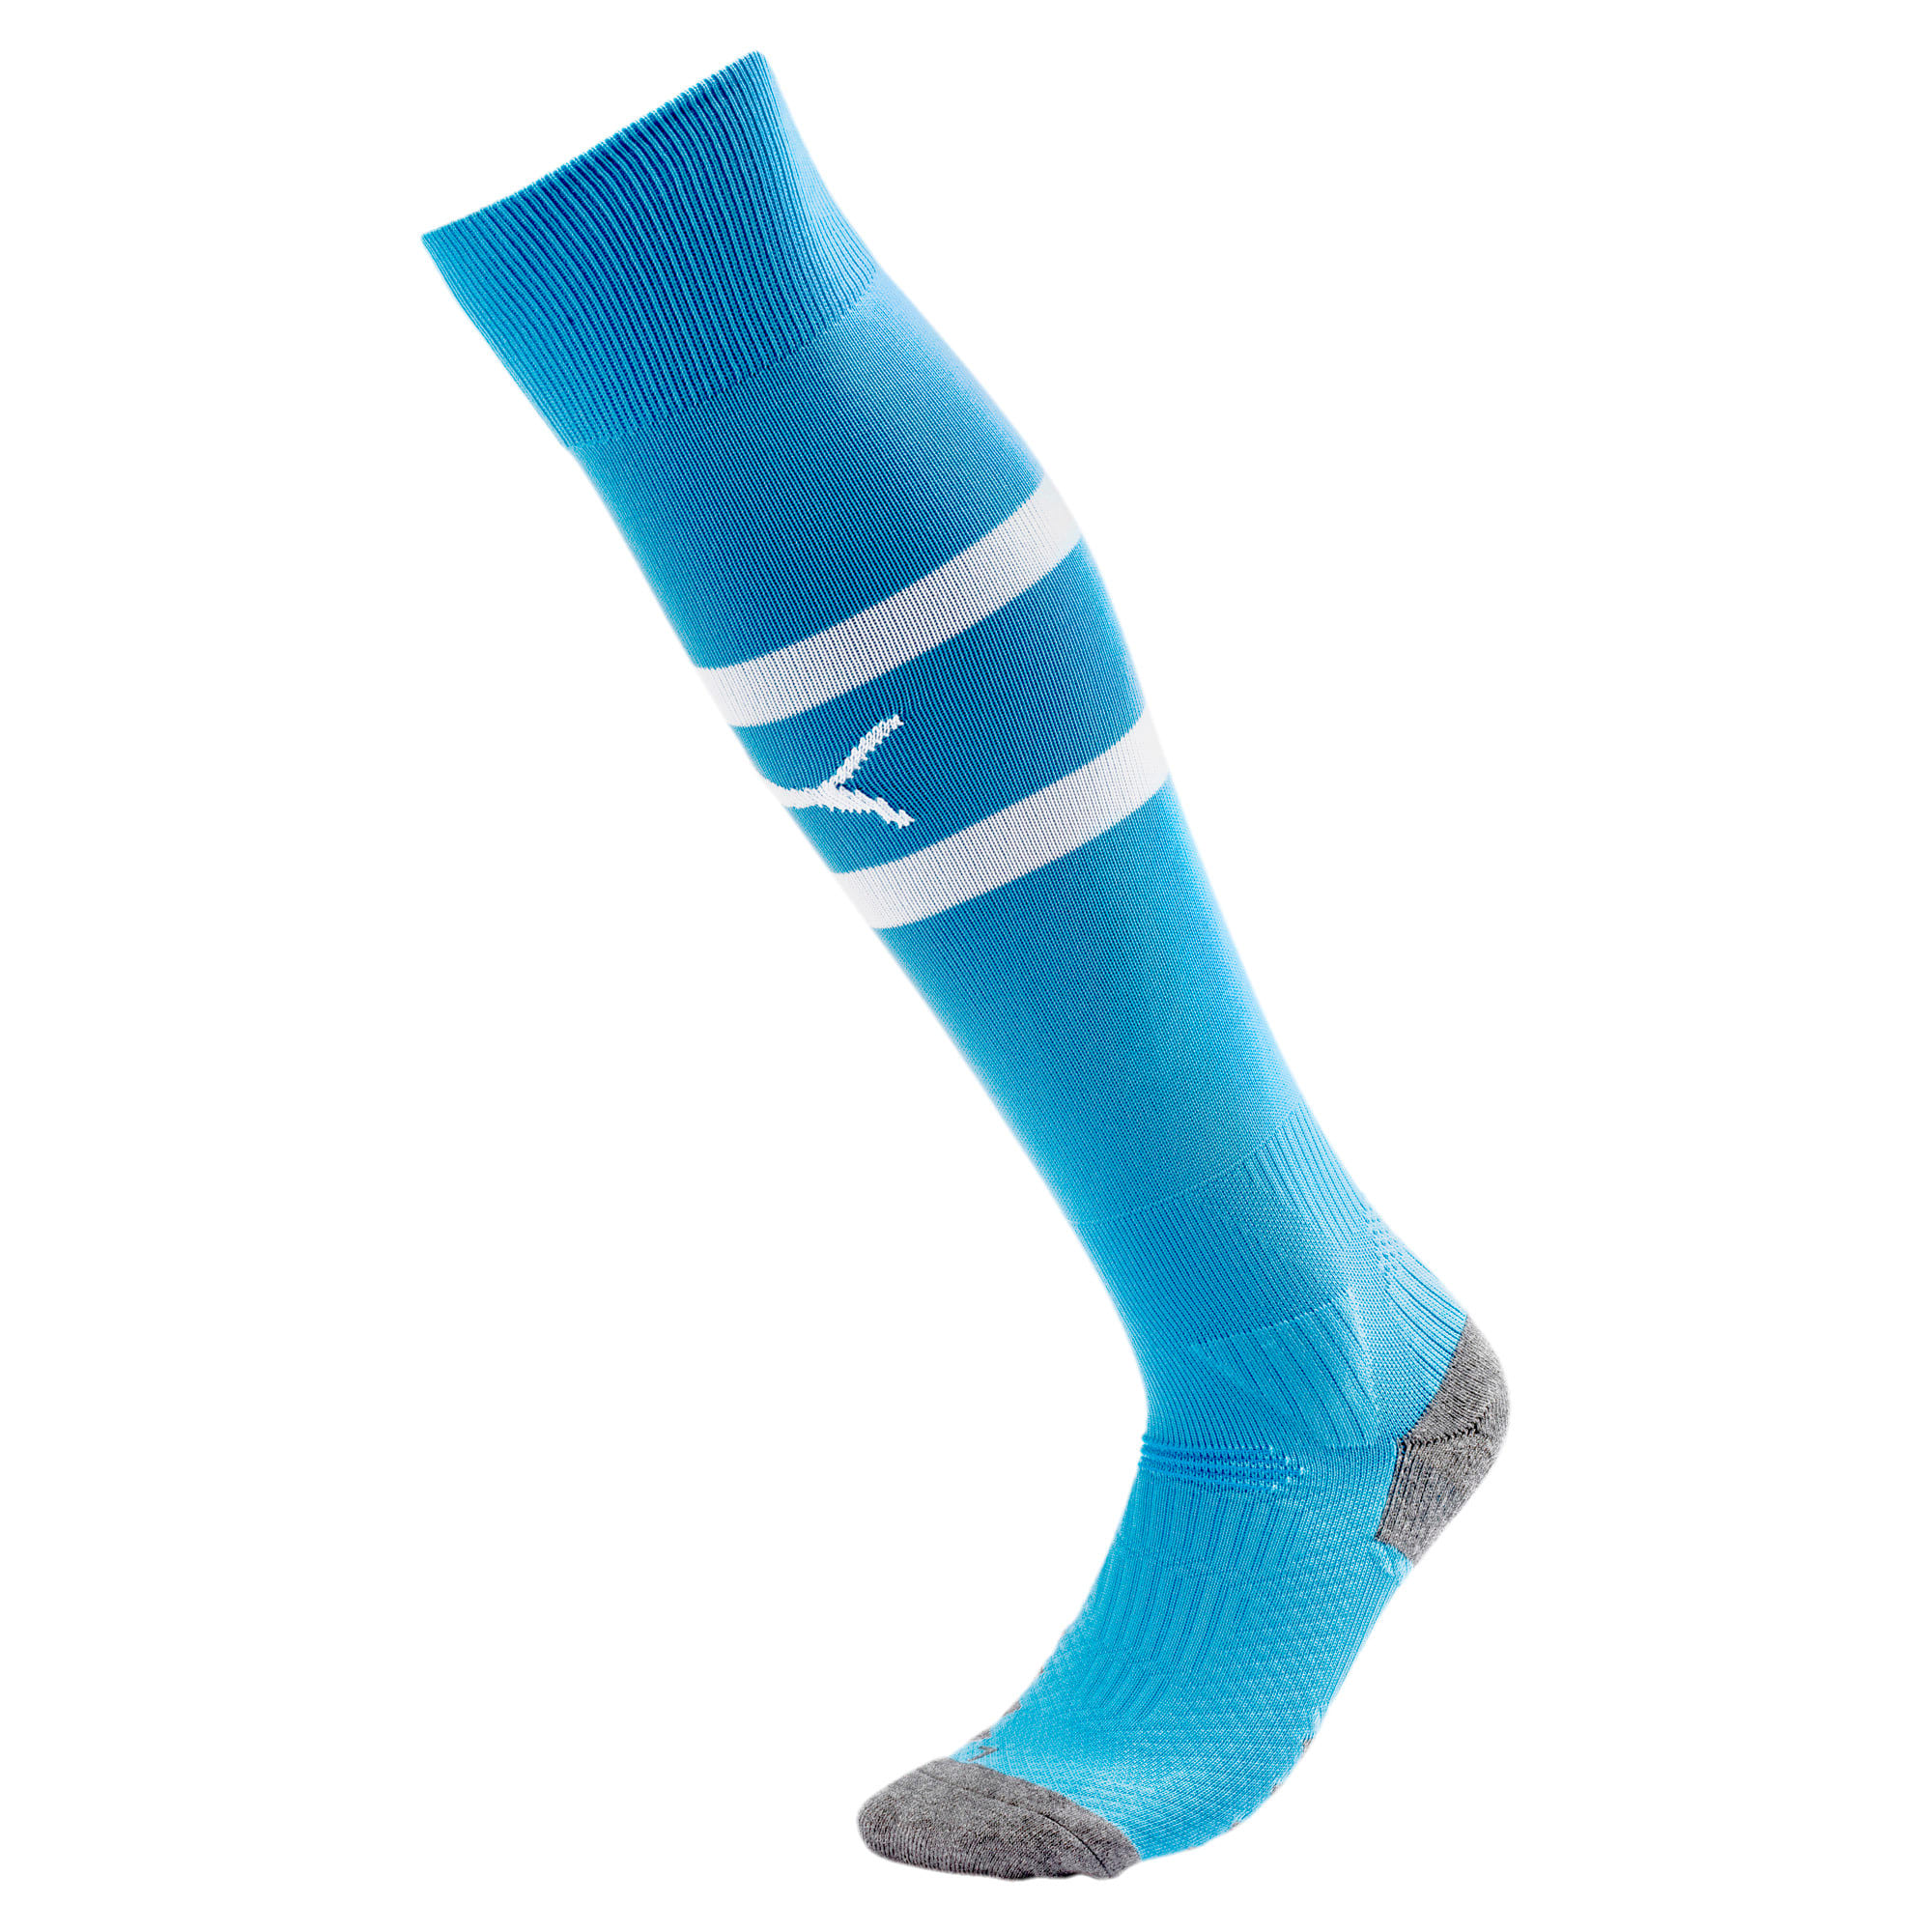 Thumbnail 1 of Olympique de Marseille Boys' Band Socks, Bleu Azur-Puma White, medium